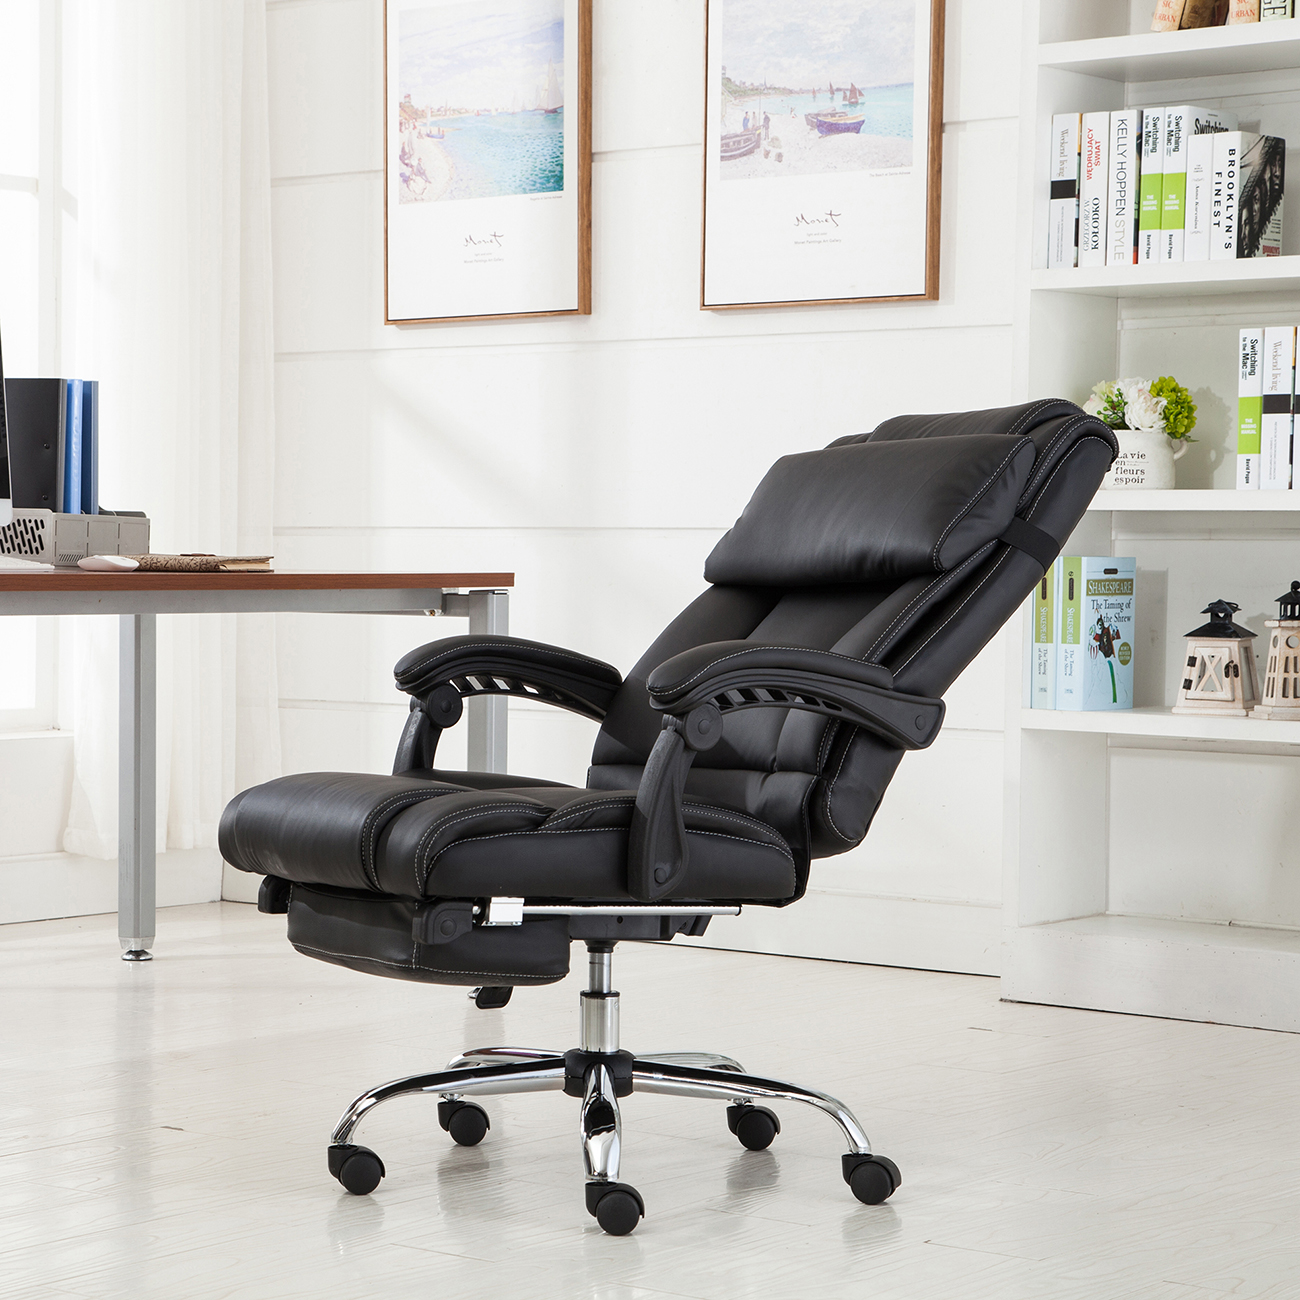 Executive Reclining Office Chair Ergonomic High Back ...